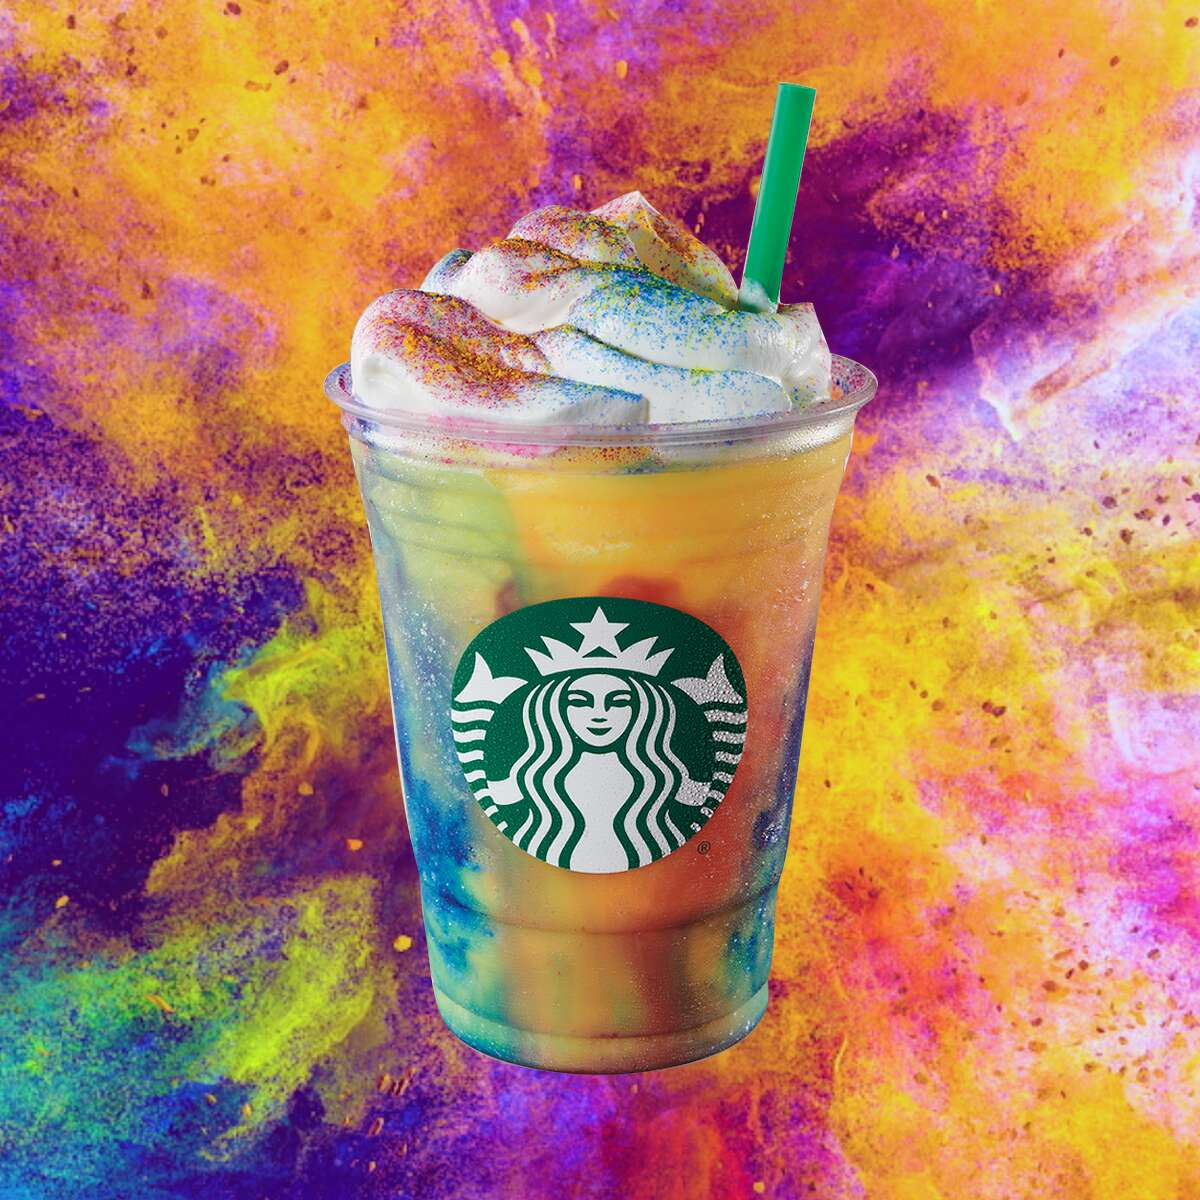 The Tie-Dye Frappucino from Starbucks is available for a limited time starting July 10, 2019.